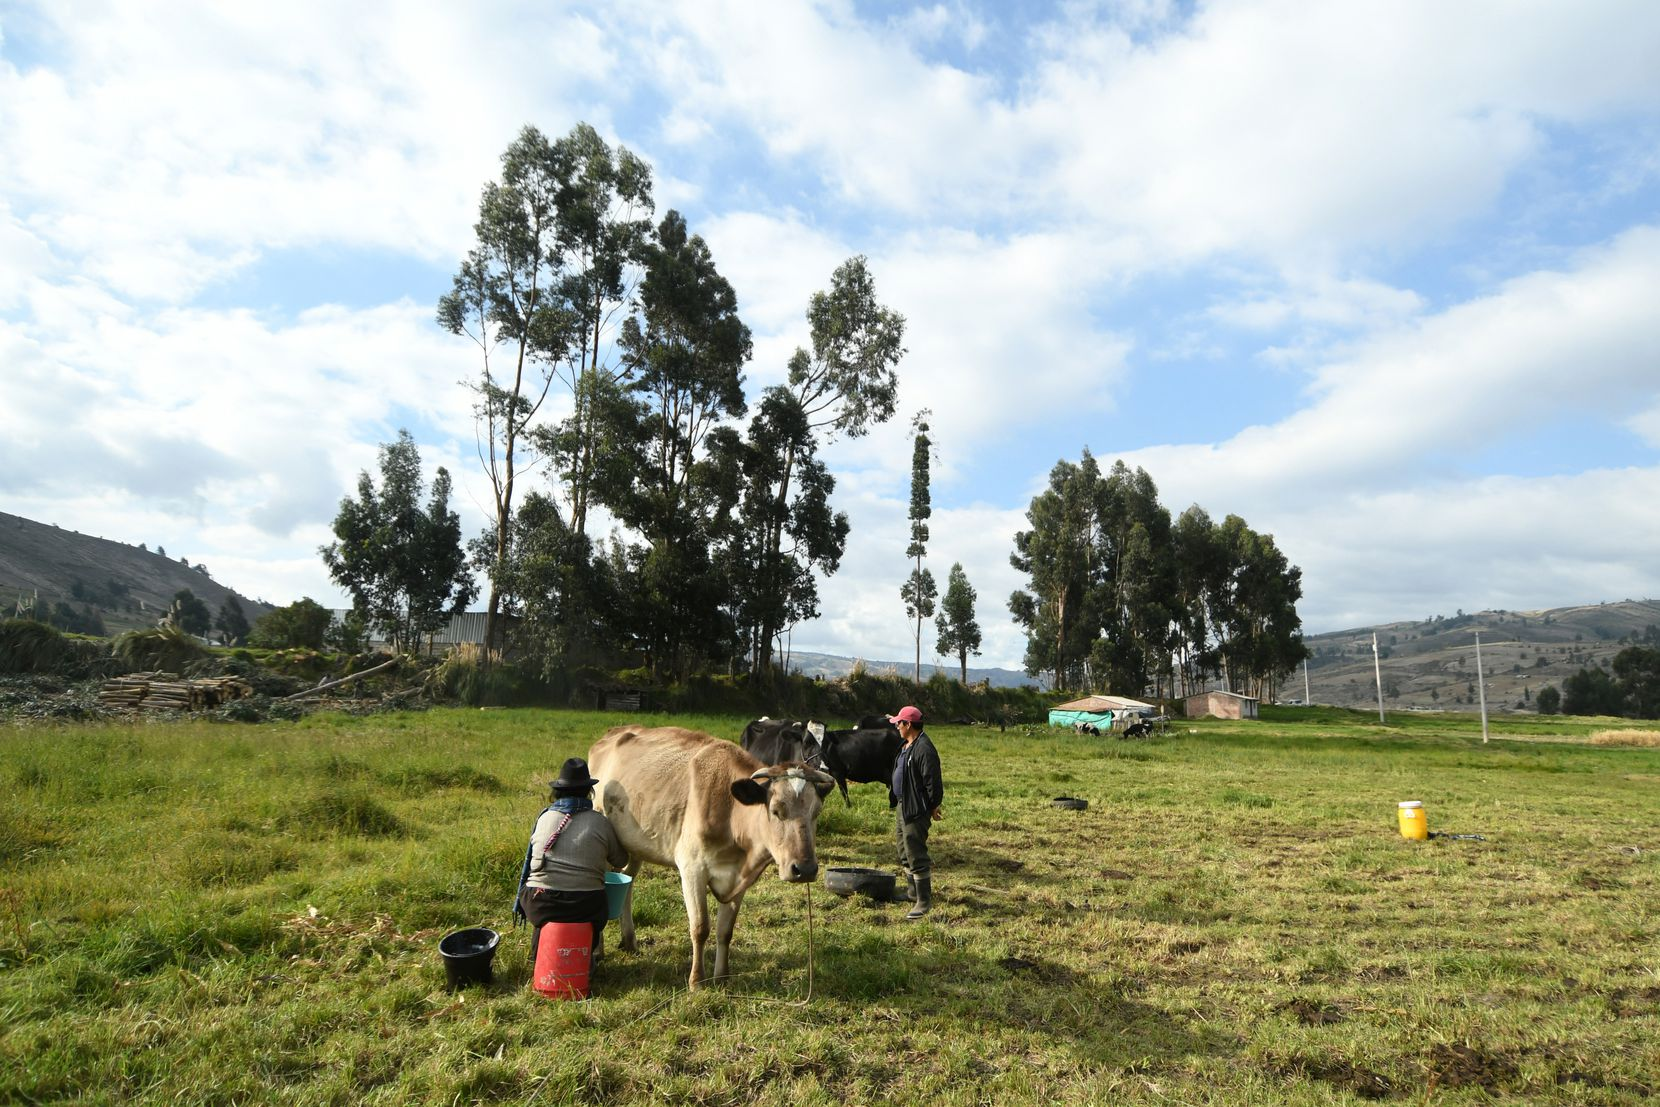 Maria, 51, and her husband Cesar, 51, milk one of their cows near their home in the Chimborazo province of Ecuador on Aug. 7, 2021. They take care of cattle and produce cheese on a daily basis. Their sons would occasionally help them before they migrated to the U.S.